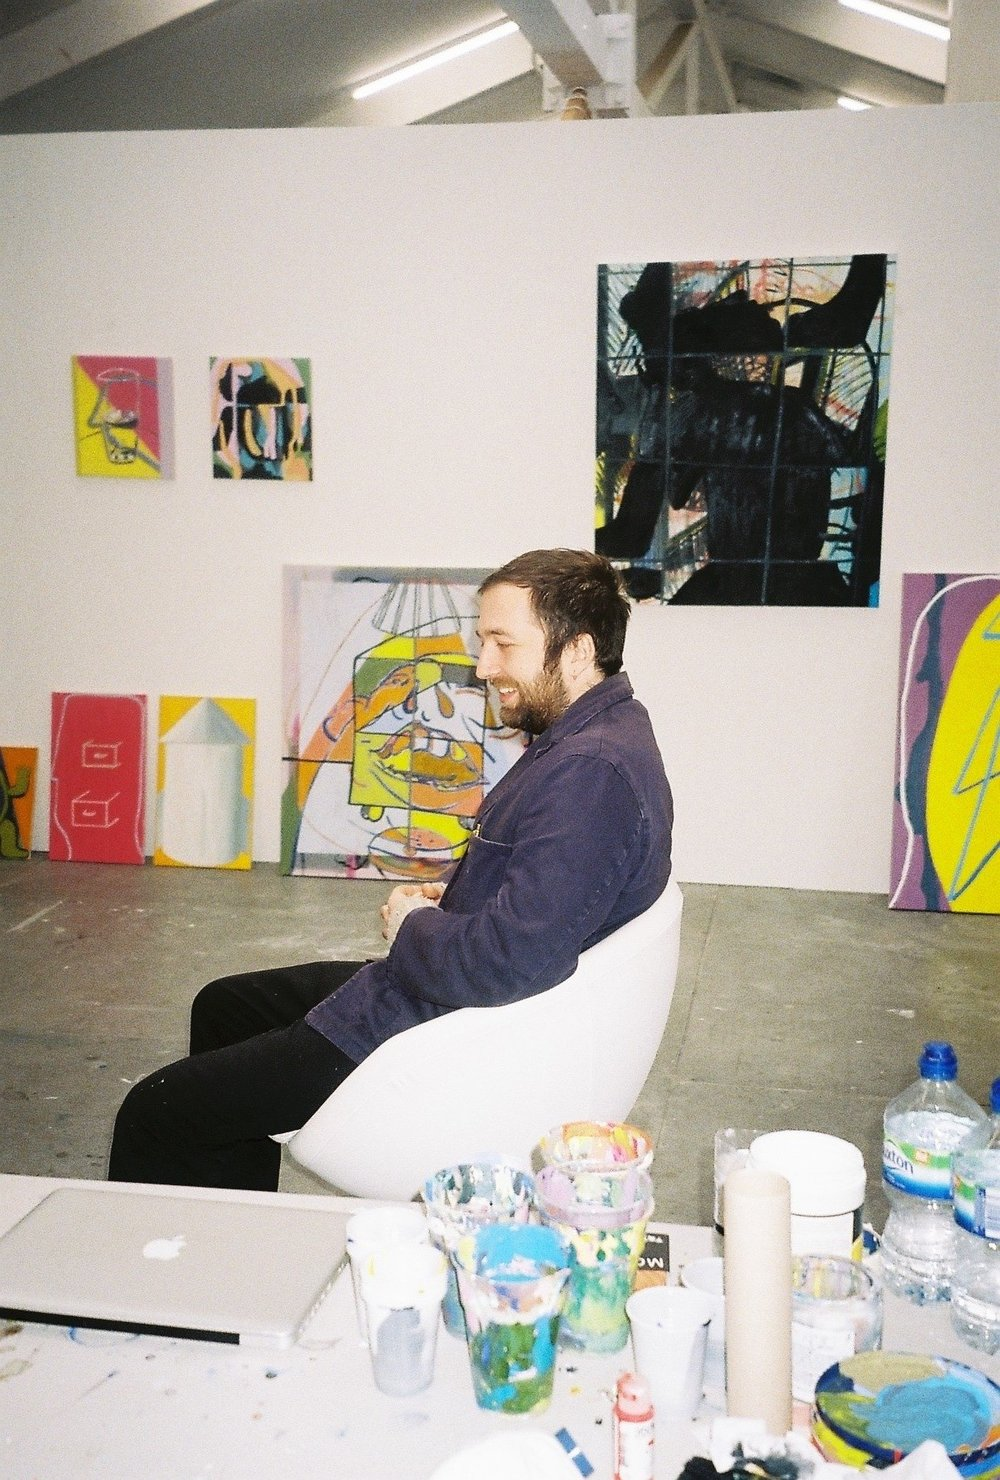 morgan wills, studio visit by dateagleart. photography by delilah olson, copyright dateagleart